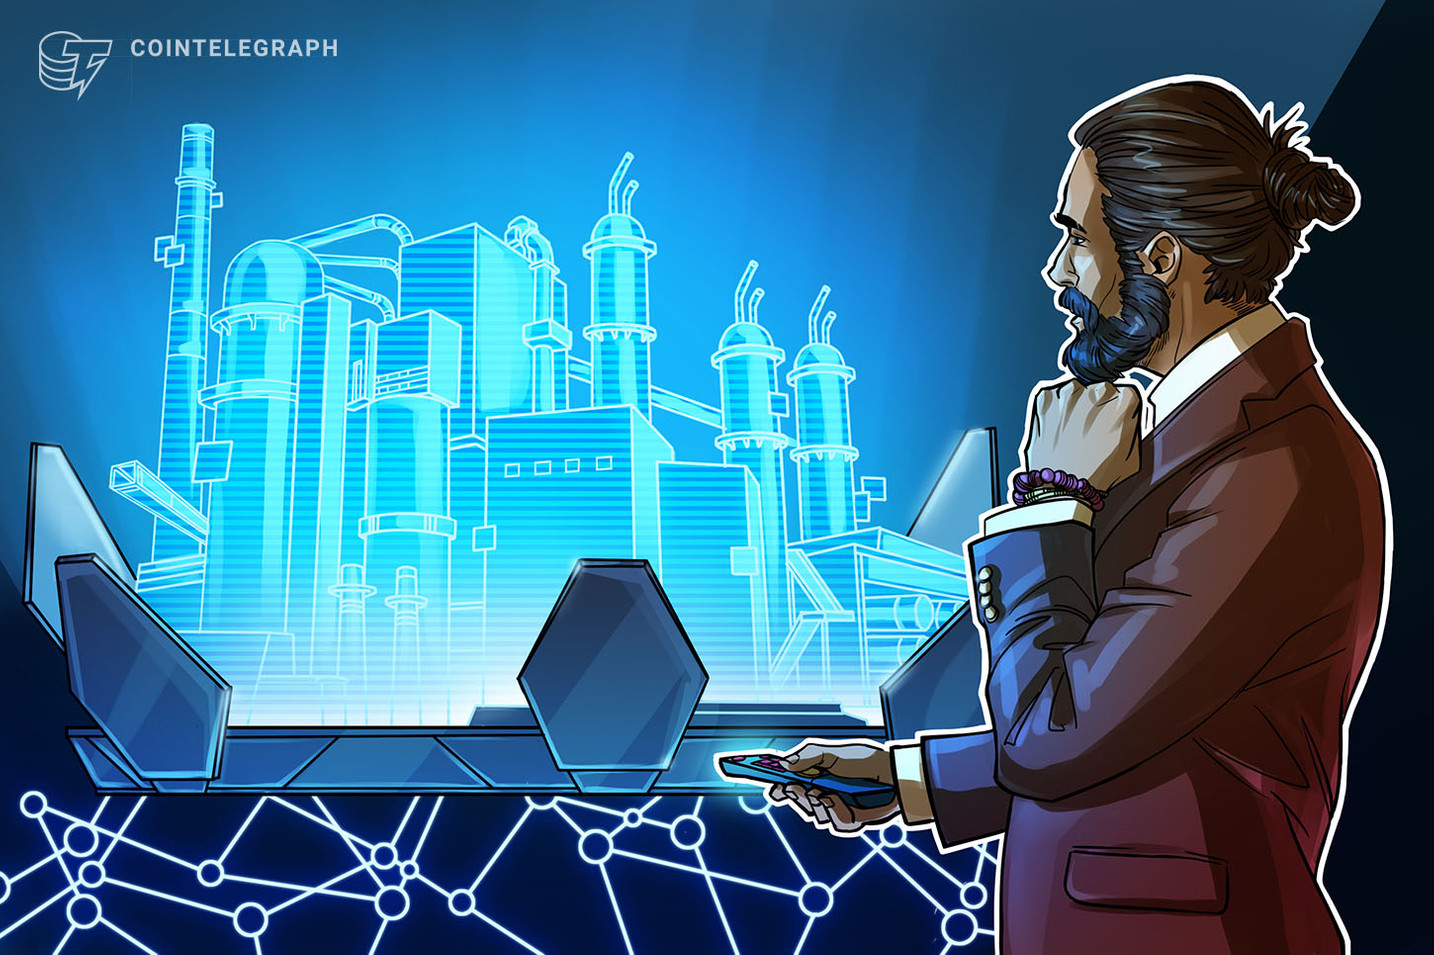 Alibaba Subsidiary Ant Financial Launches New Consortium Blockchain Platform for SMEs